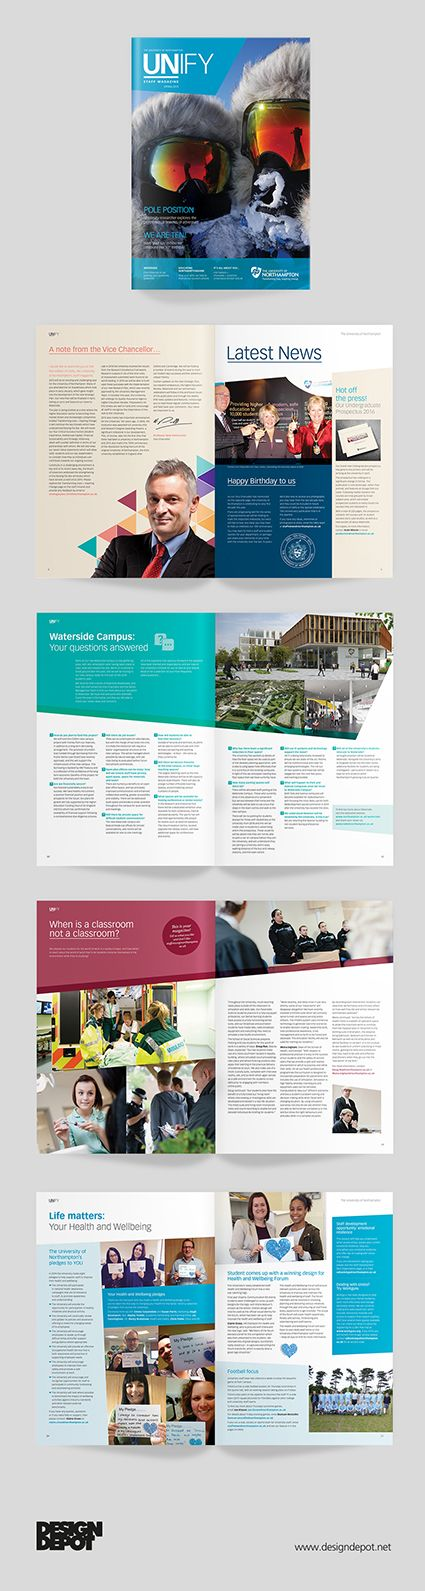 13 Best College Booklet Images On Pinterest | Brochure Design